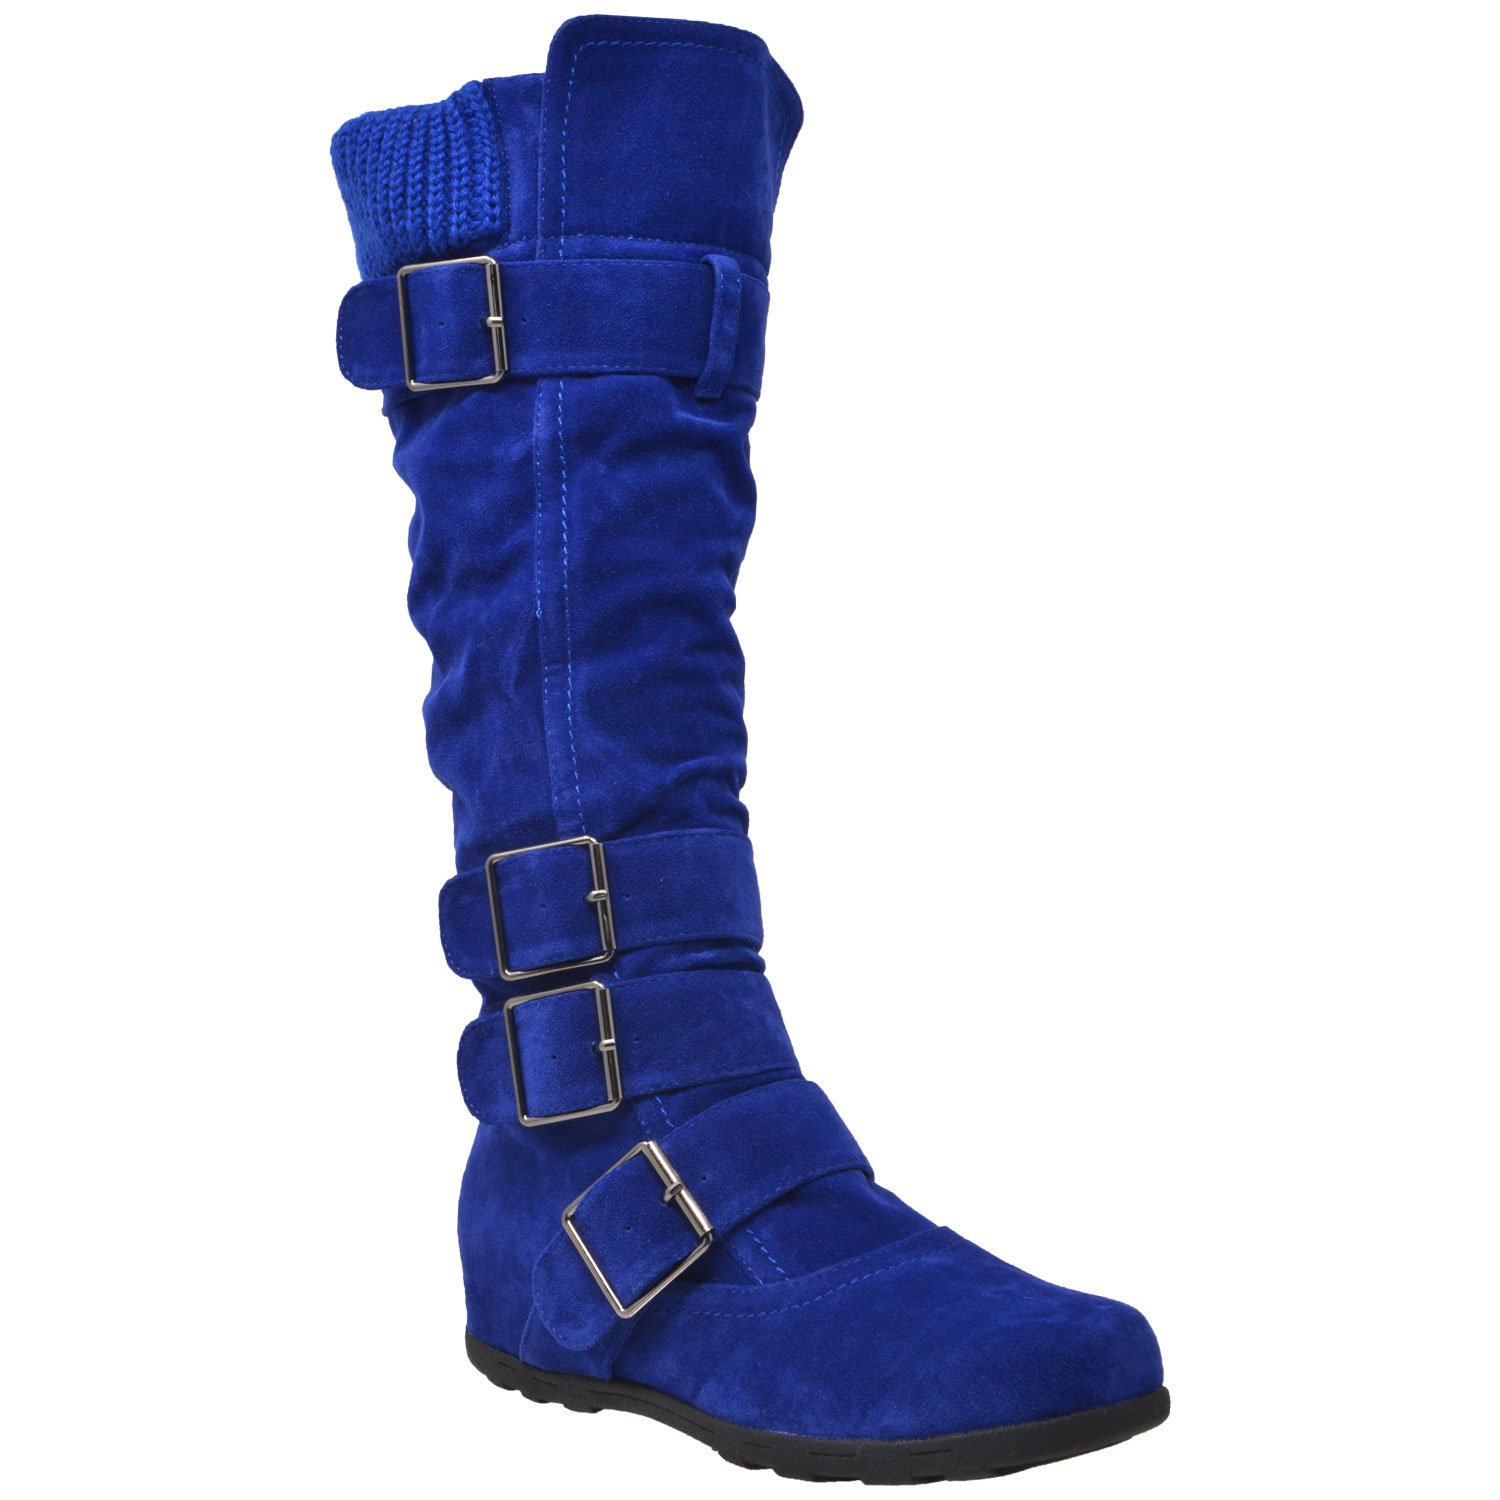 Generation Y Womens Knee High Boots Ruched Suede Knitted Calf Strappy Buckles Accent Royal Blue SZ 10 by Generation Y